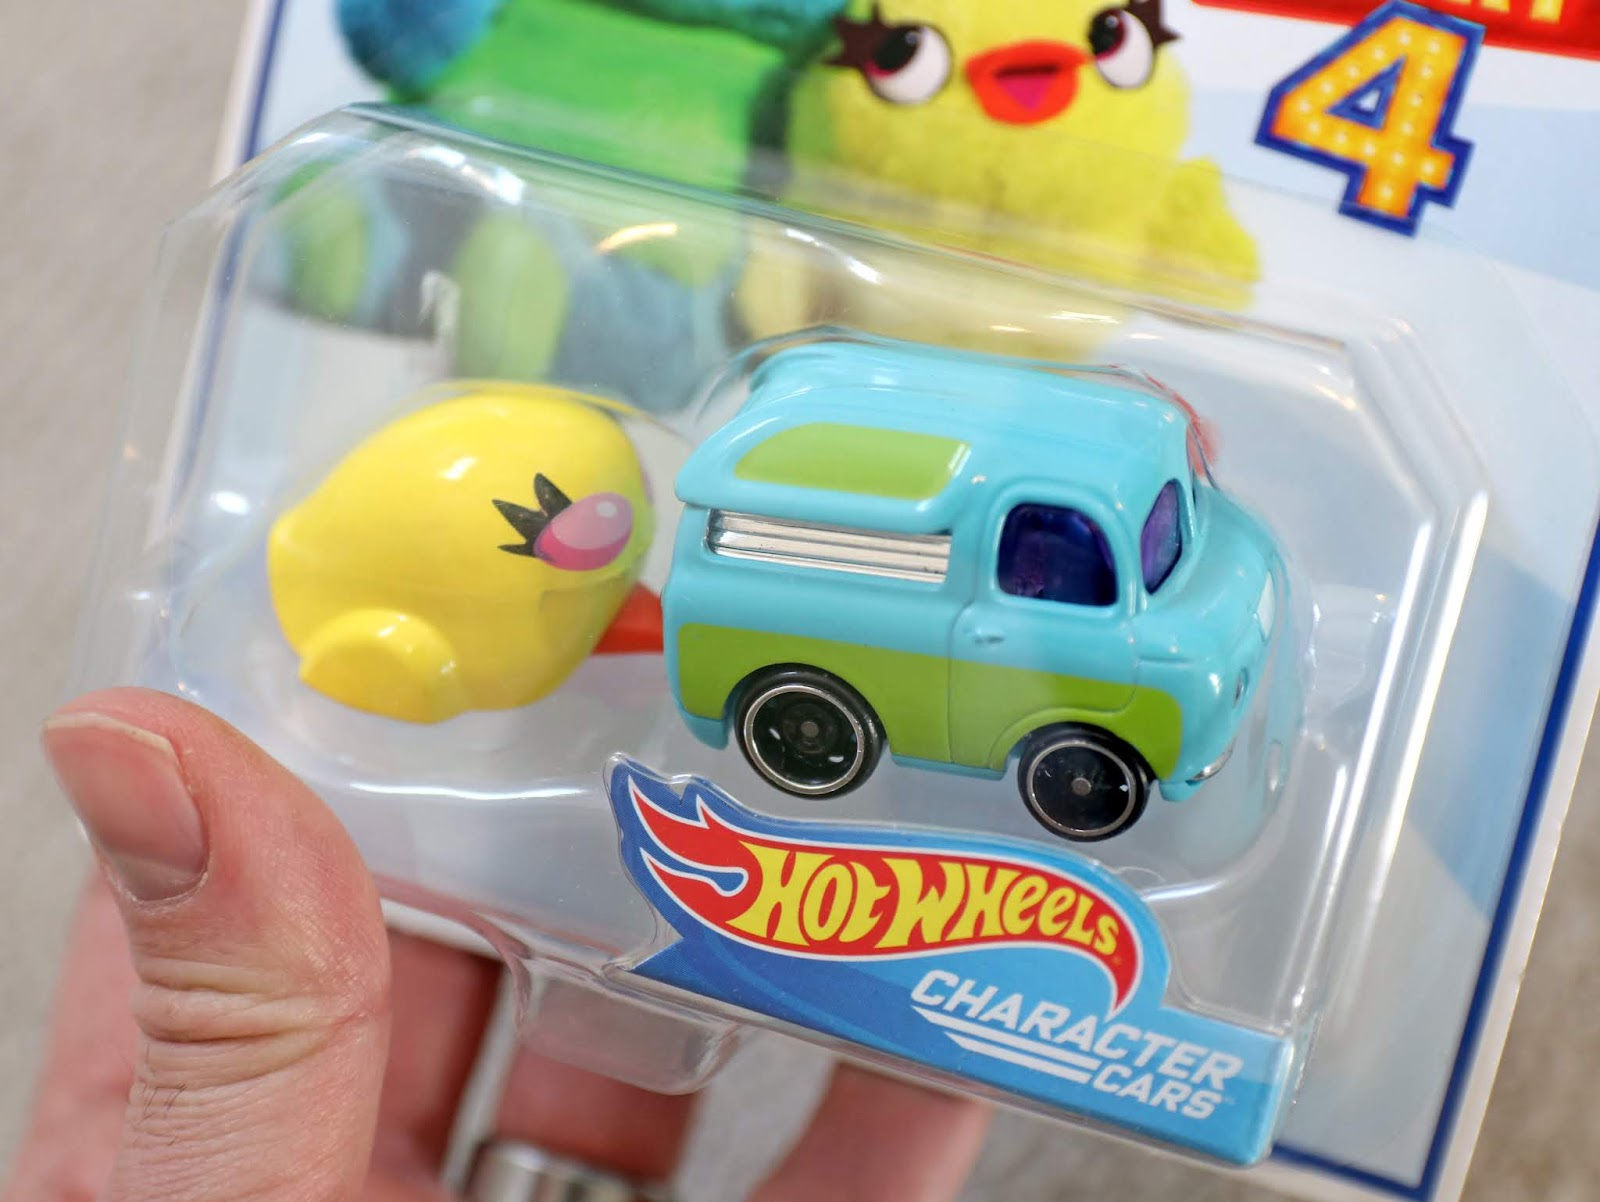 toy story 4 hotwheels character cars ducky and bunny